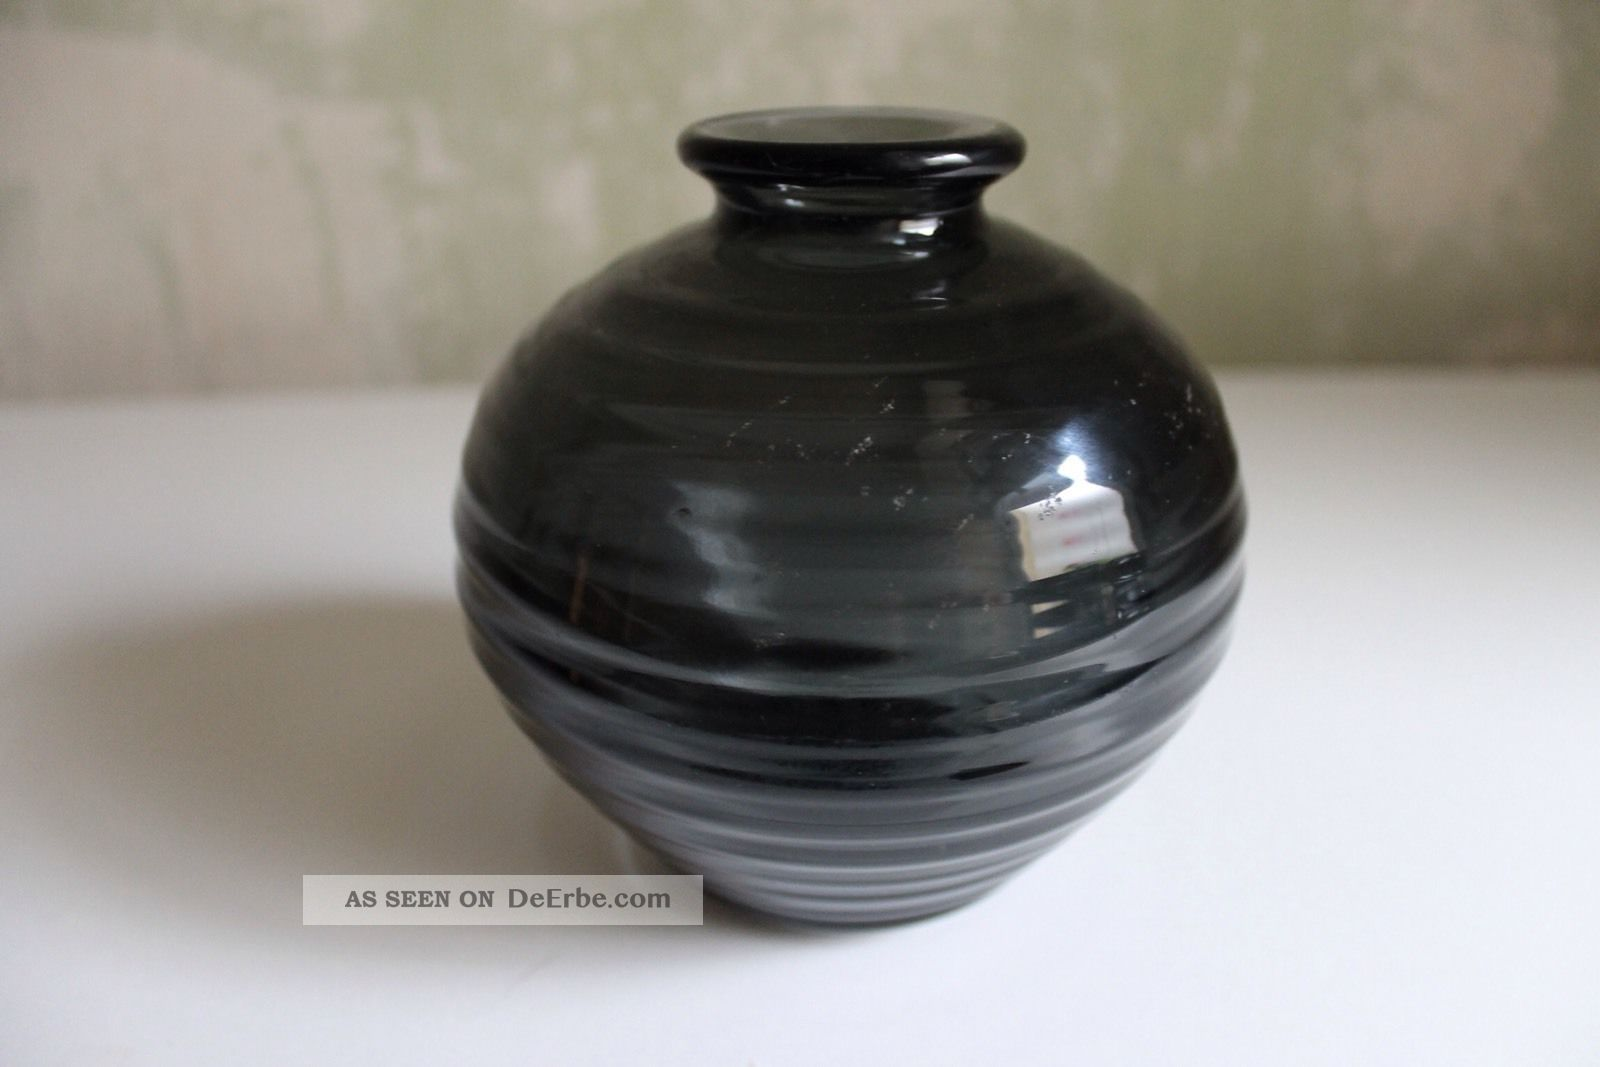 wagenfeld bauchige vase 1938 wv 82 rauchblaues dickwandig glas bauhaus design. Black Bedroom Furniture Sets. Home Design Ideas